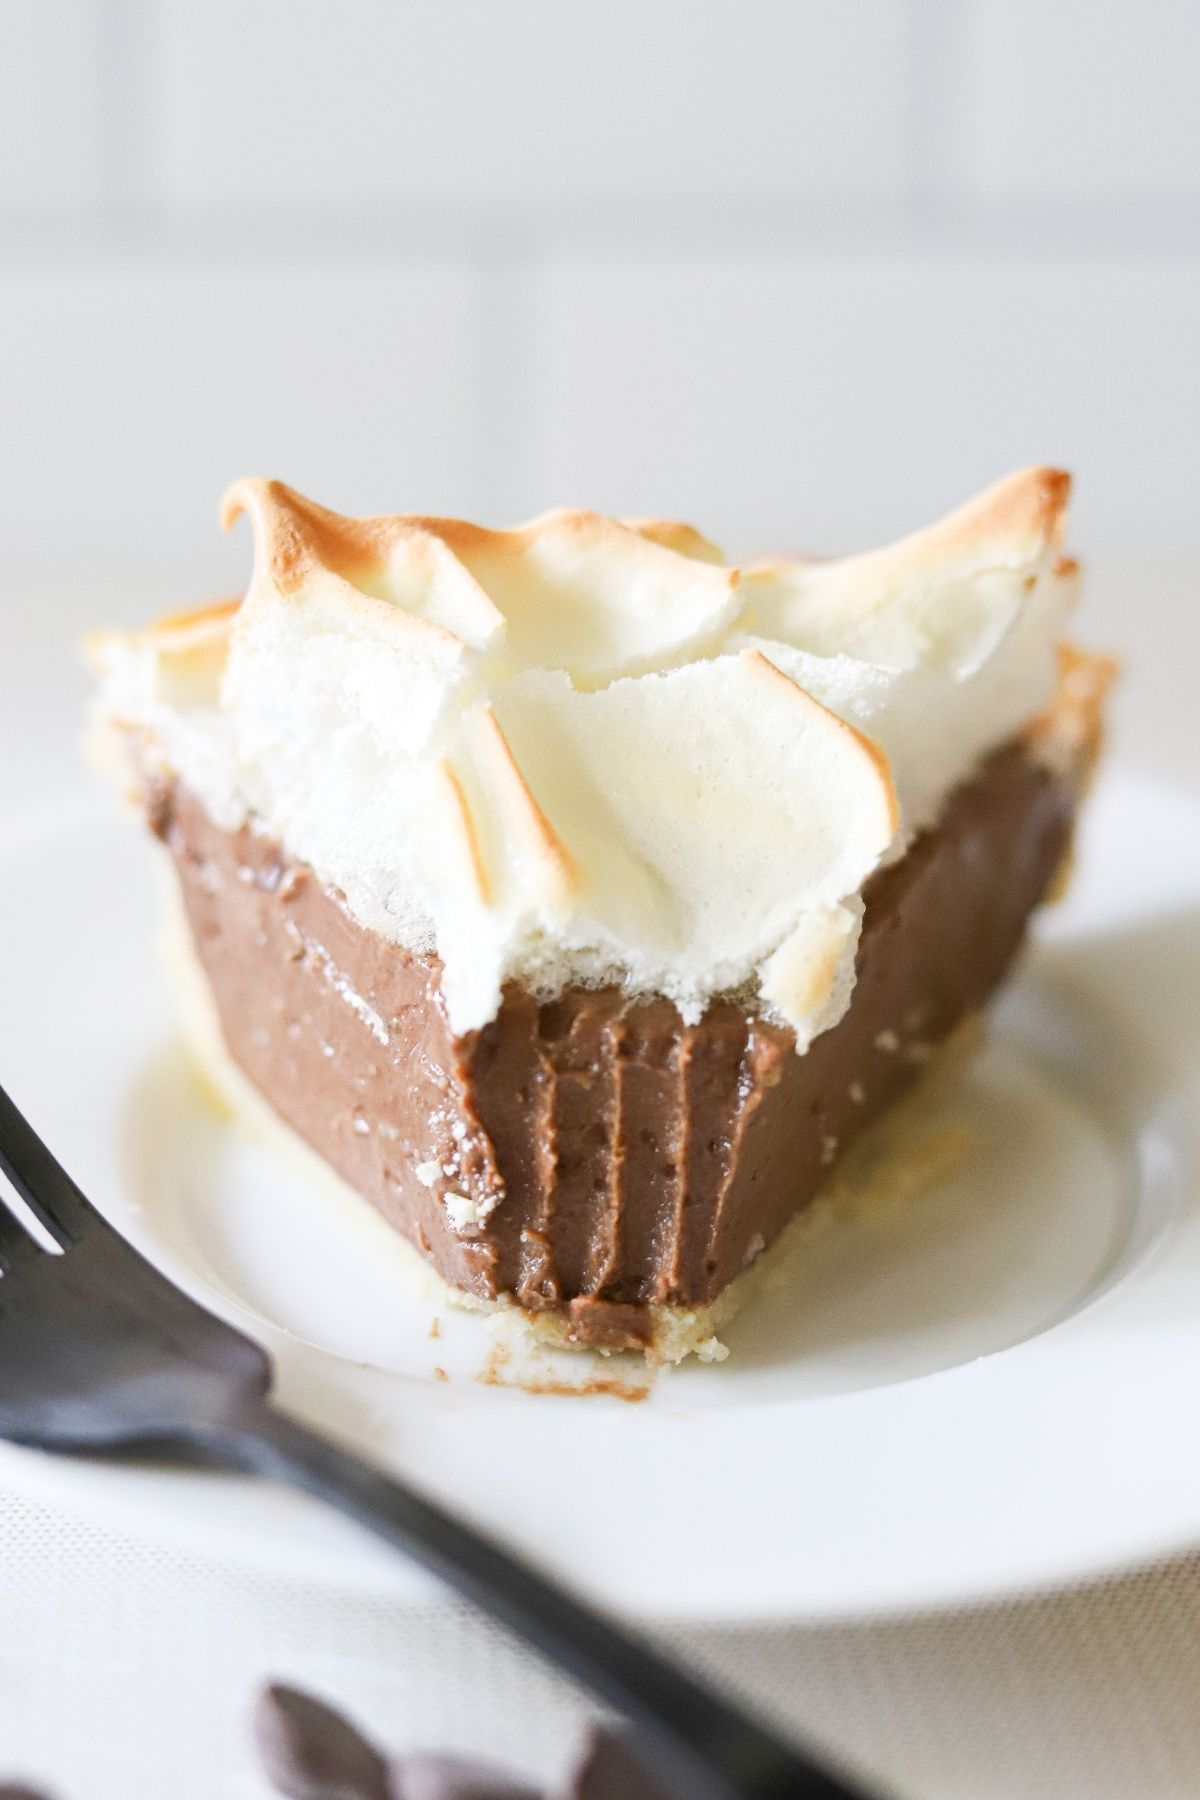 A slice of sugar free chocolate cream pie topped with meringue on a white plate. One bite has been taken.